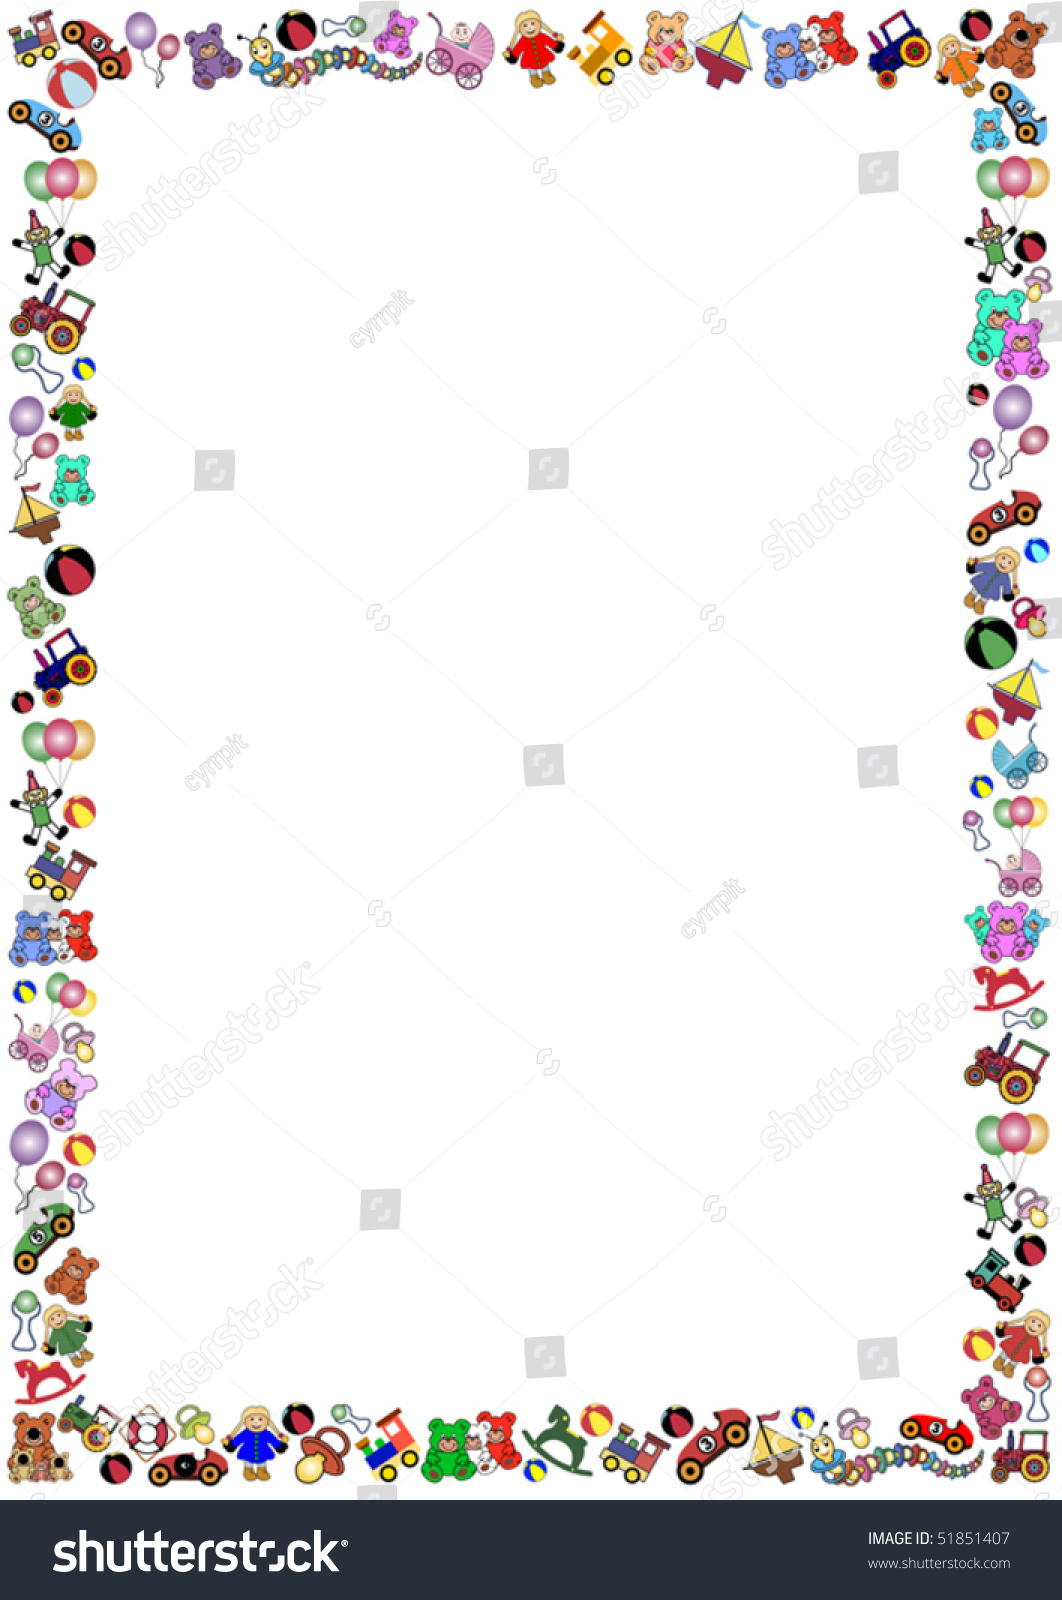 Little Boys Toys Border : Border out many little colorful toys stock vector